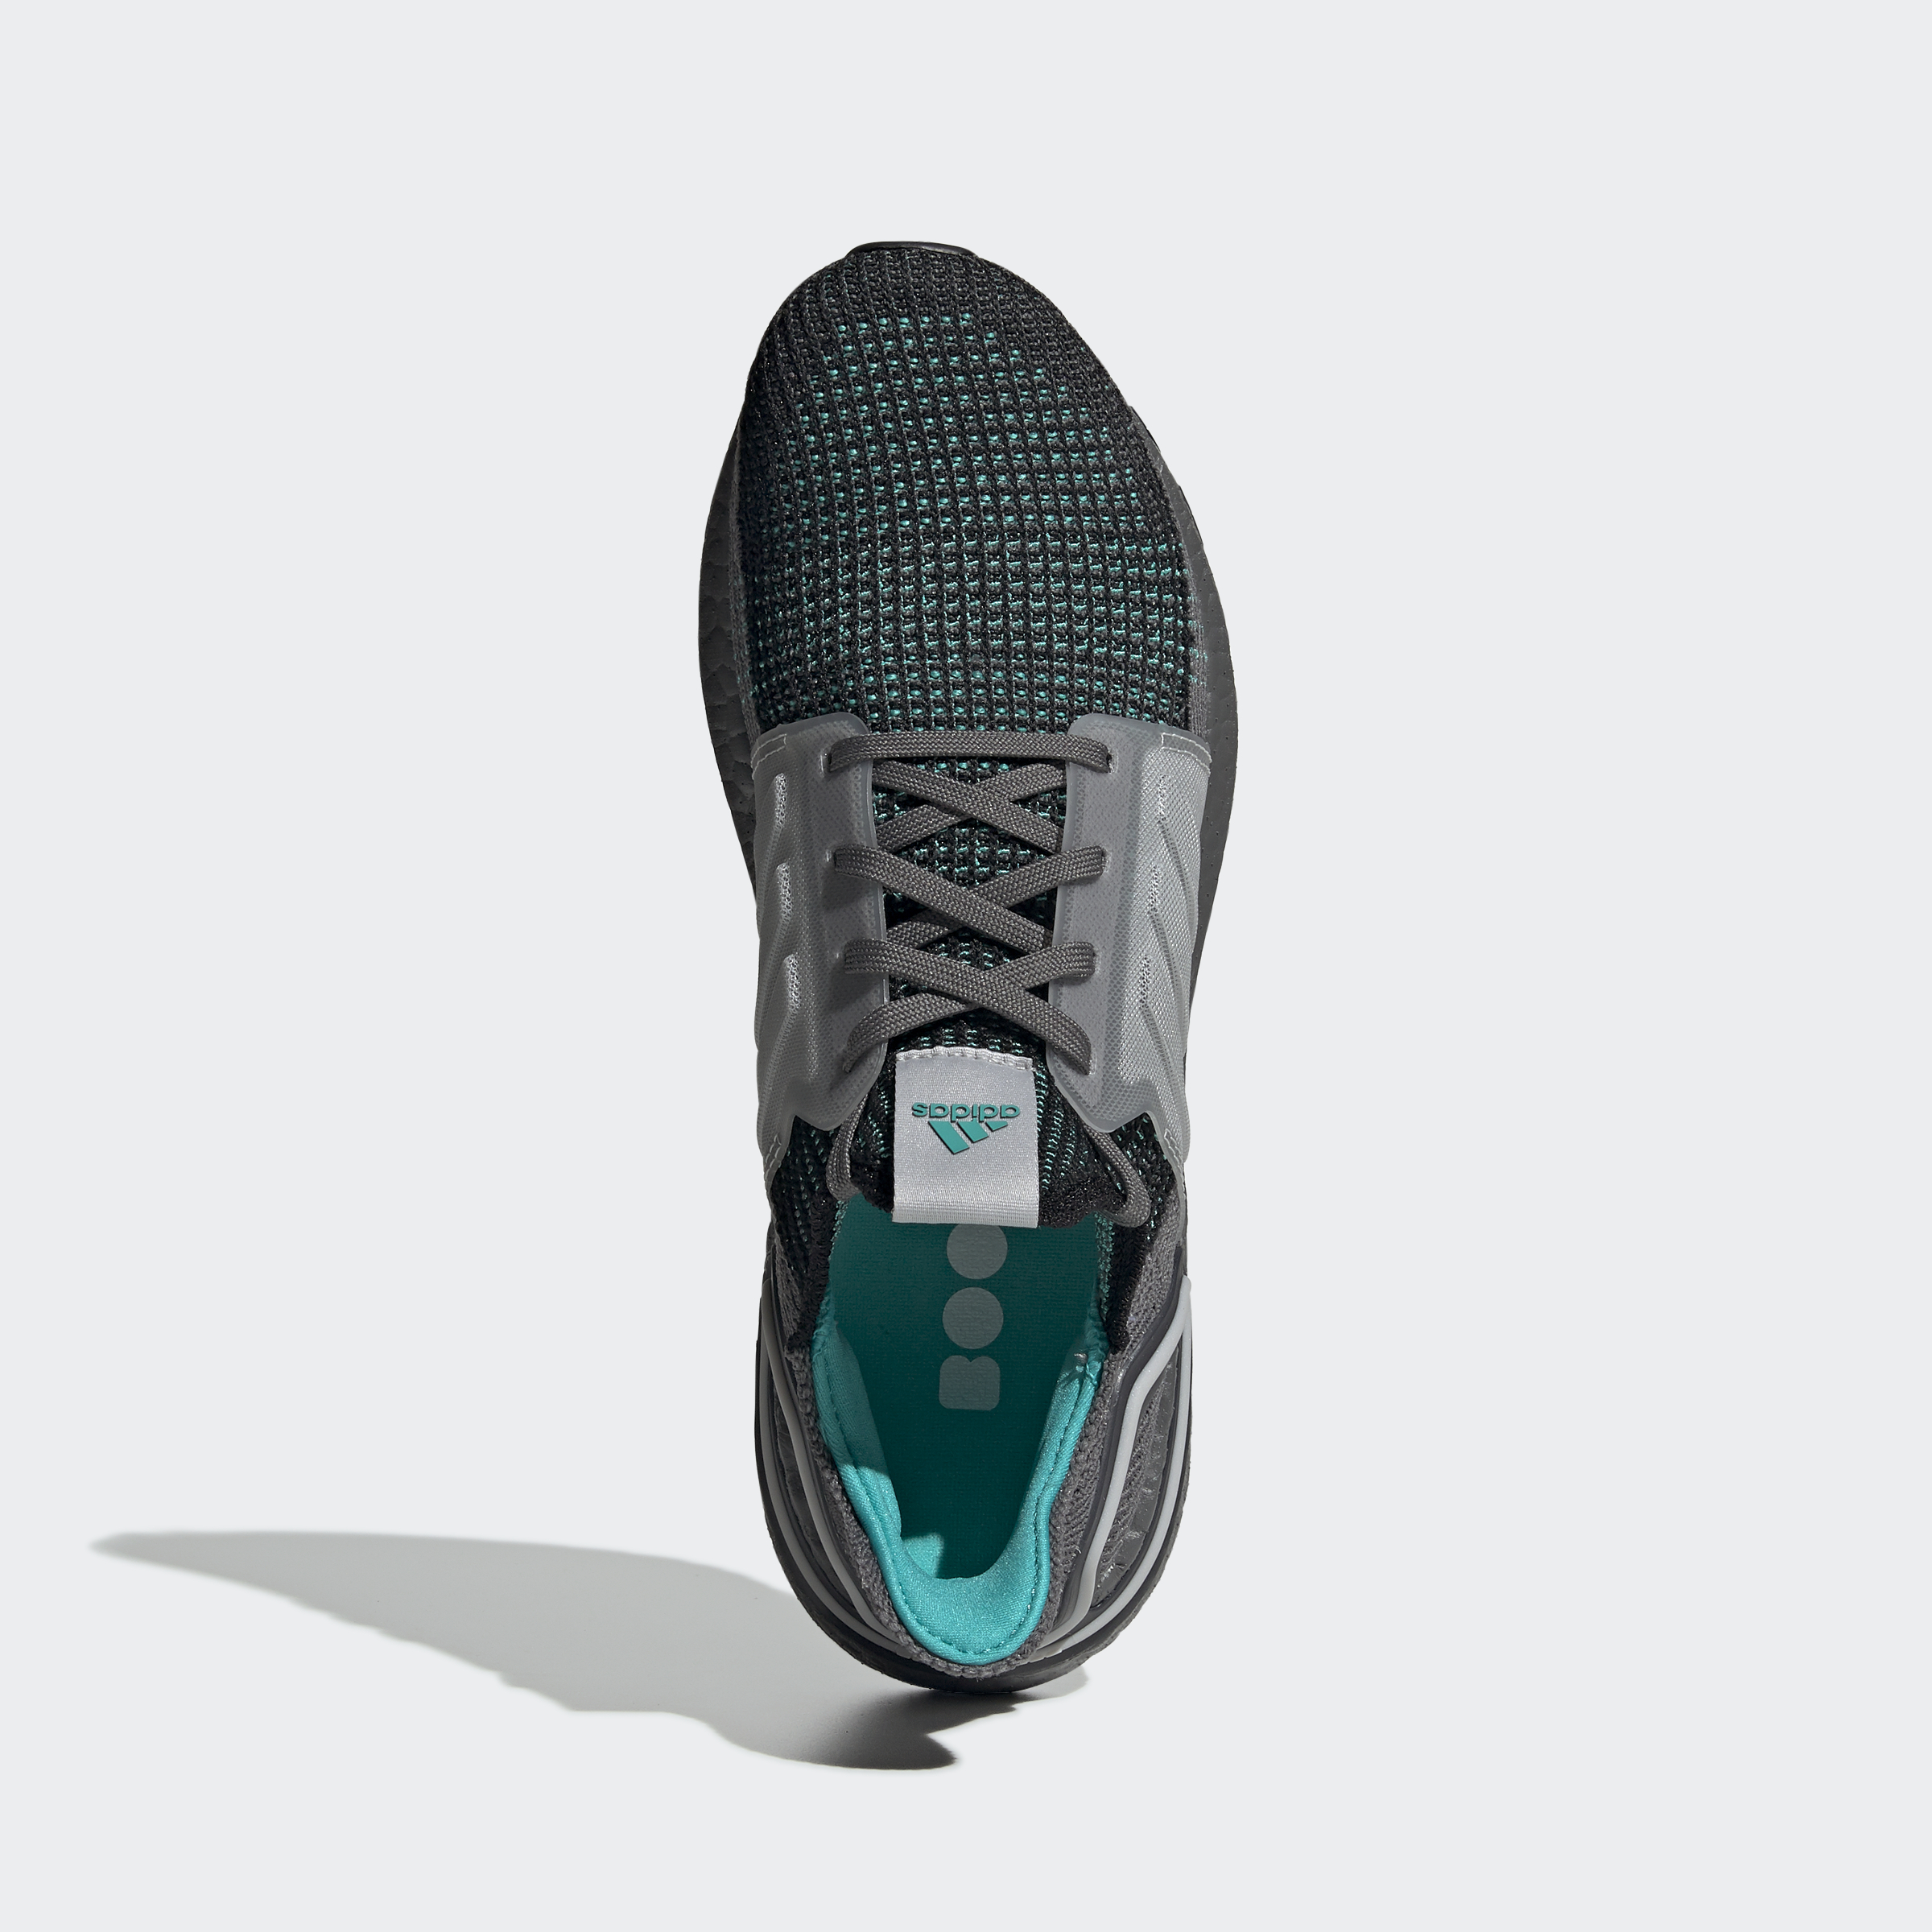 adidas-Ultraboost-19-Shoes-Athletic-amp-Sneakers thumbnail 12